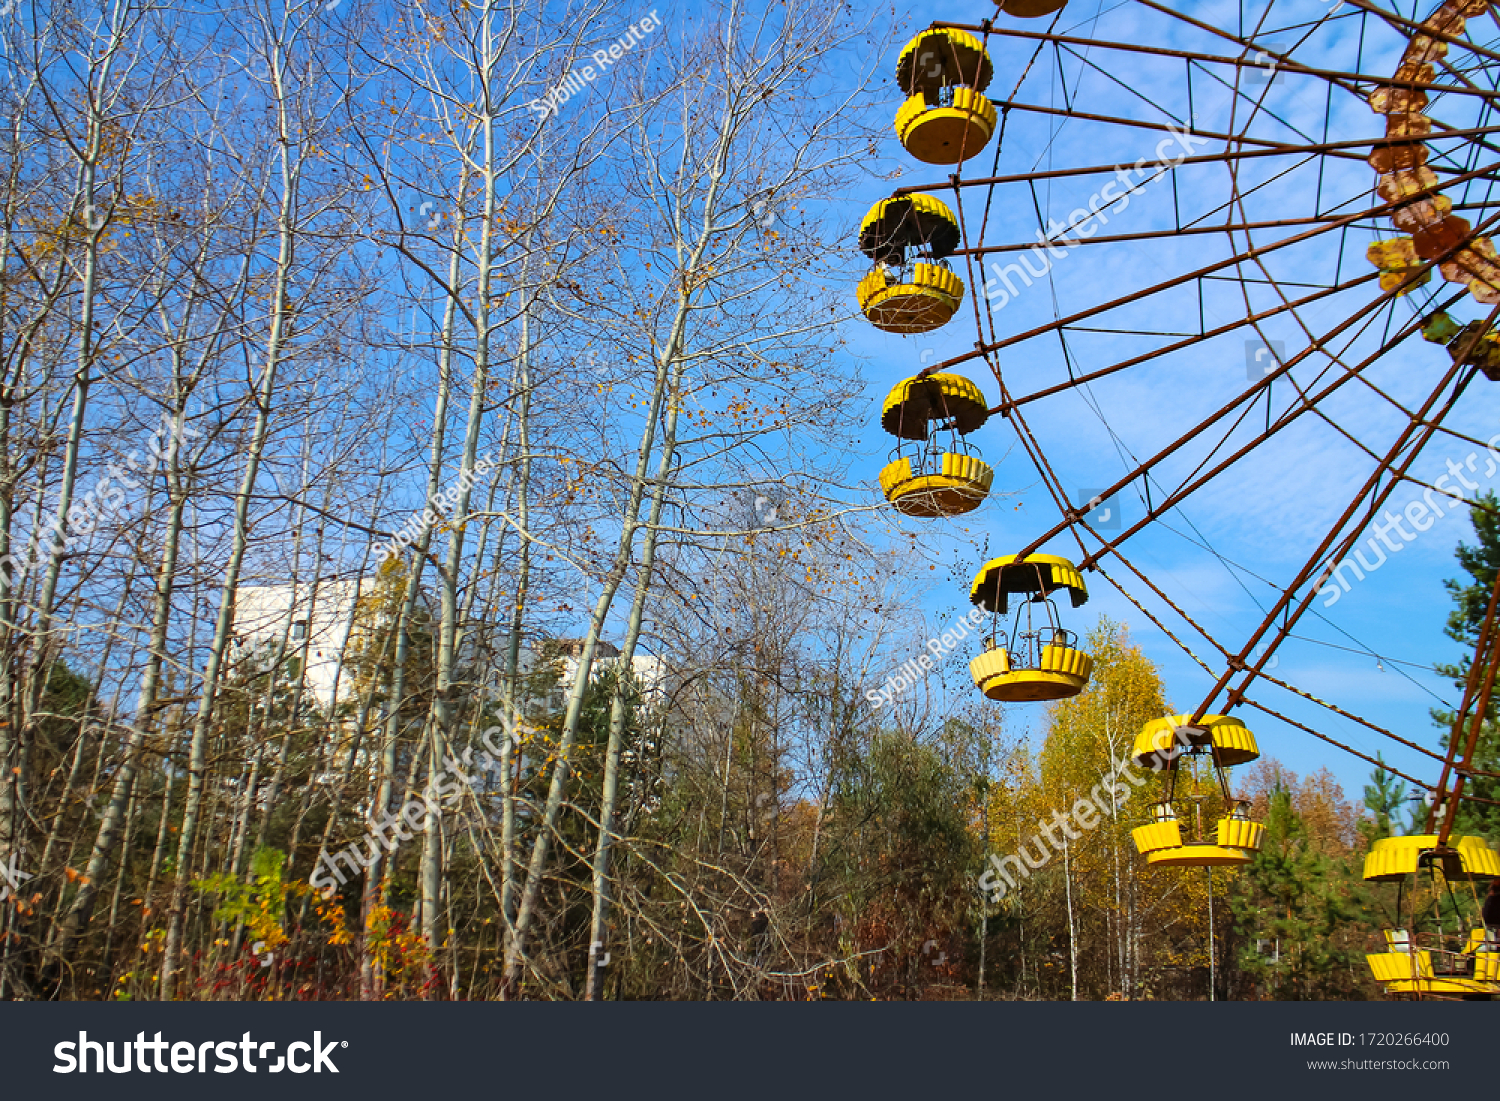 stock-photo-iconic-ferris-wheel-at-the-a